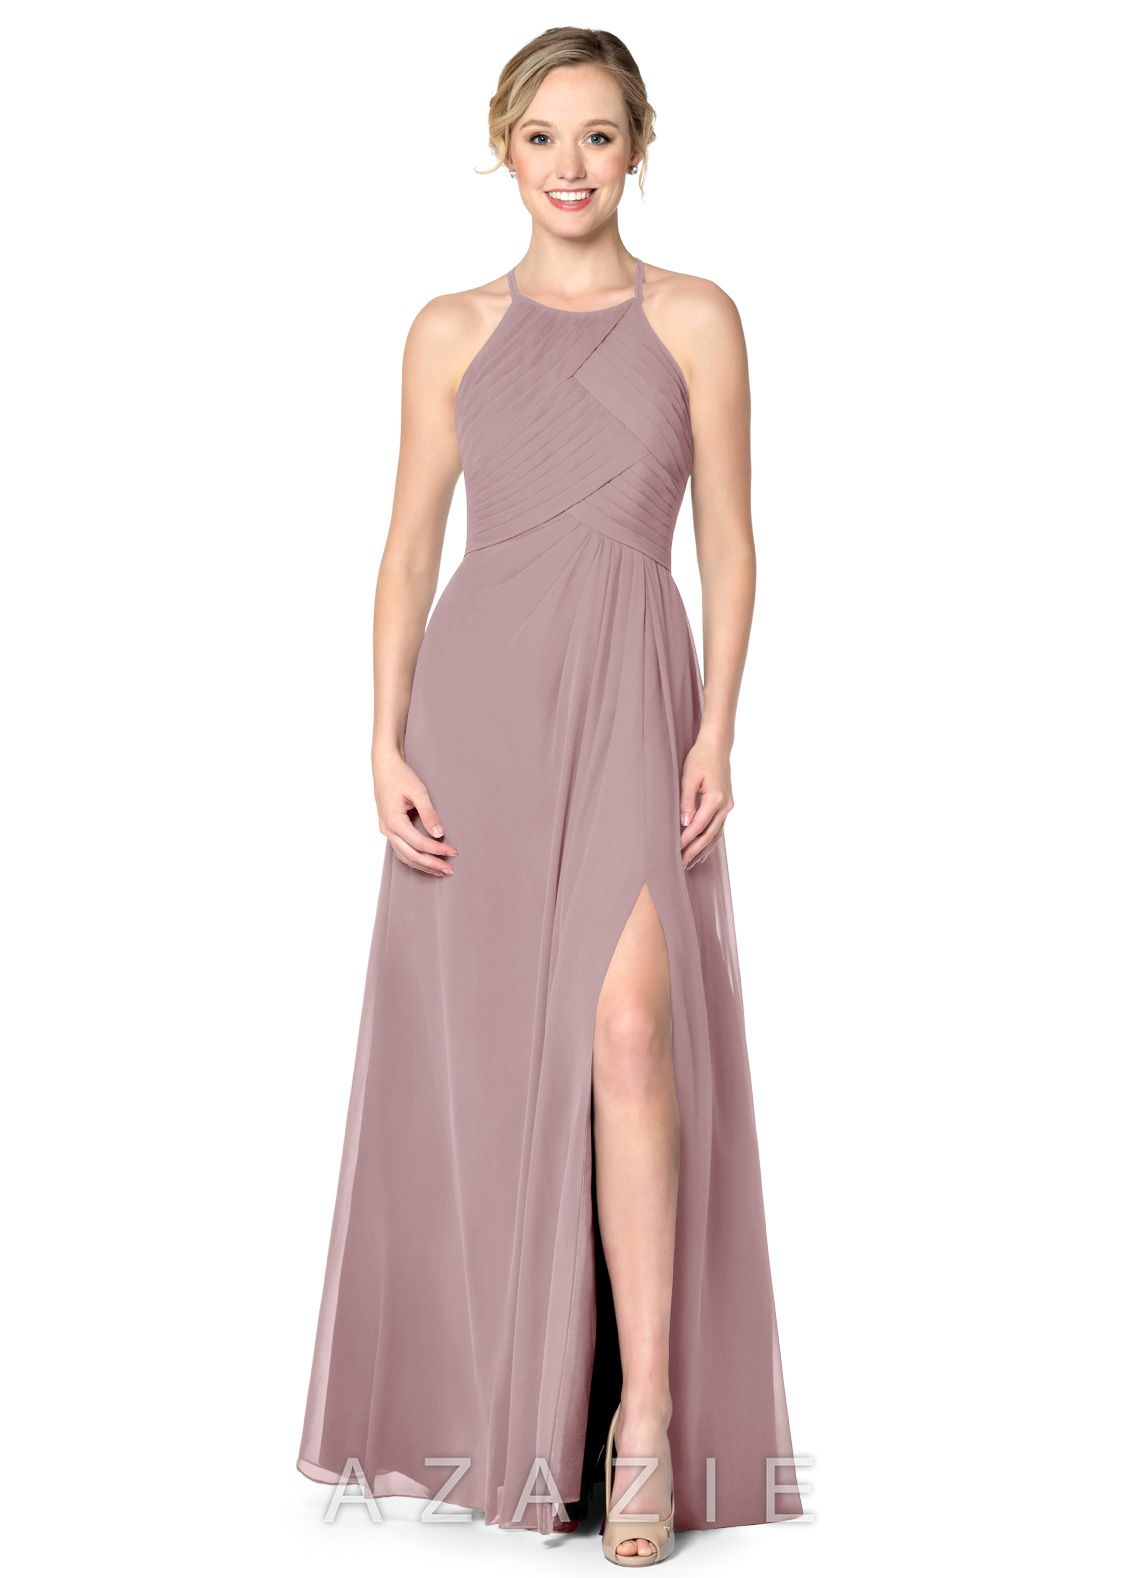 9291508ad1 Azazie Ginger Allure Bridesmaid Dress | Azazie